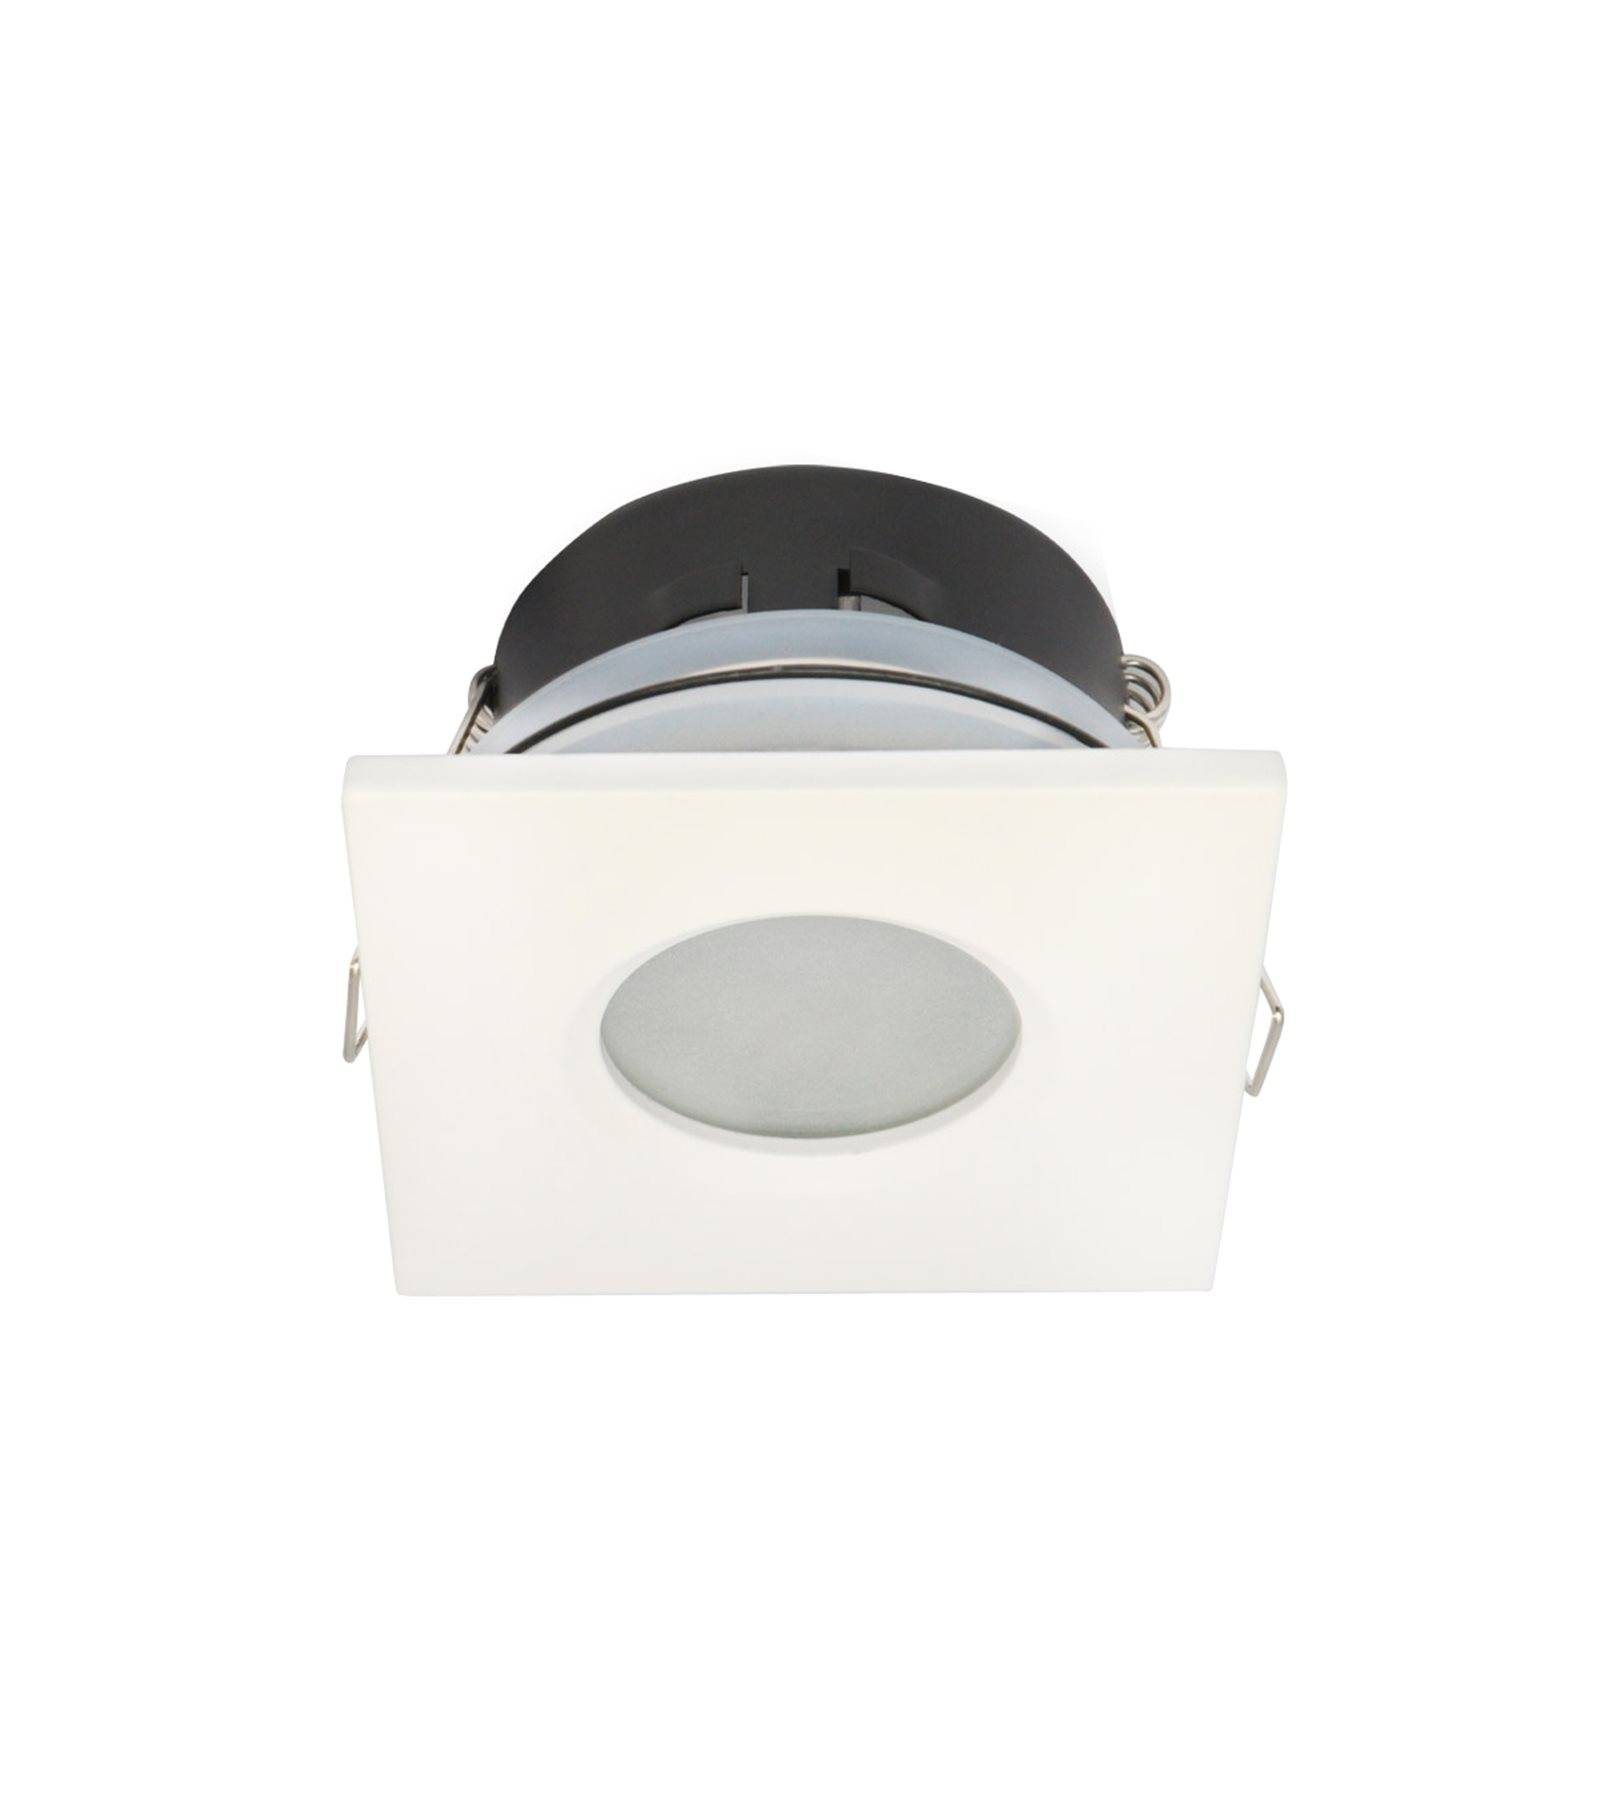 Spot encastrable salle de bain blanc carr gu5 3 mr16 ip65 - Spot led encastrable salle de bain ip65 etanche ...